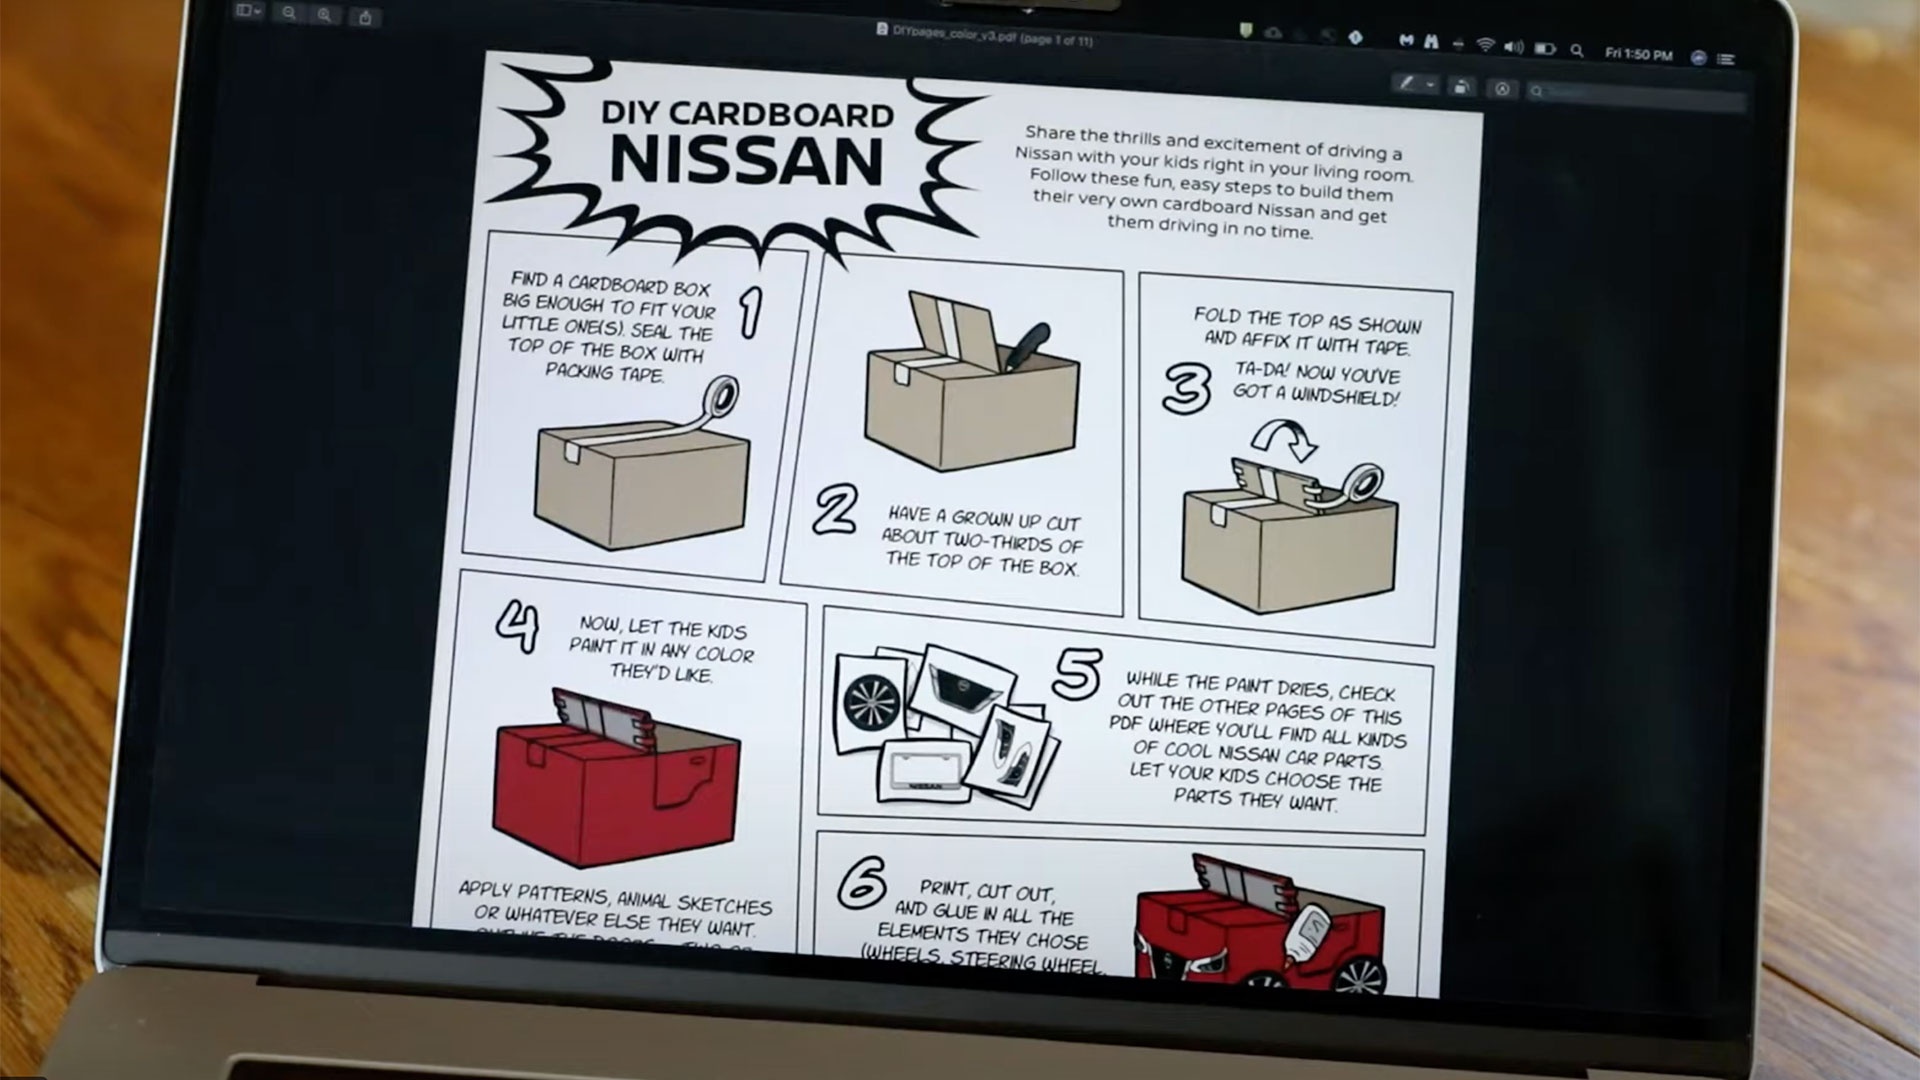 Build your own Nissan Kidster